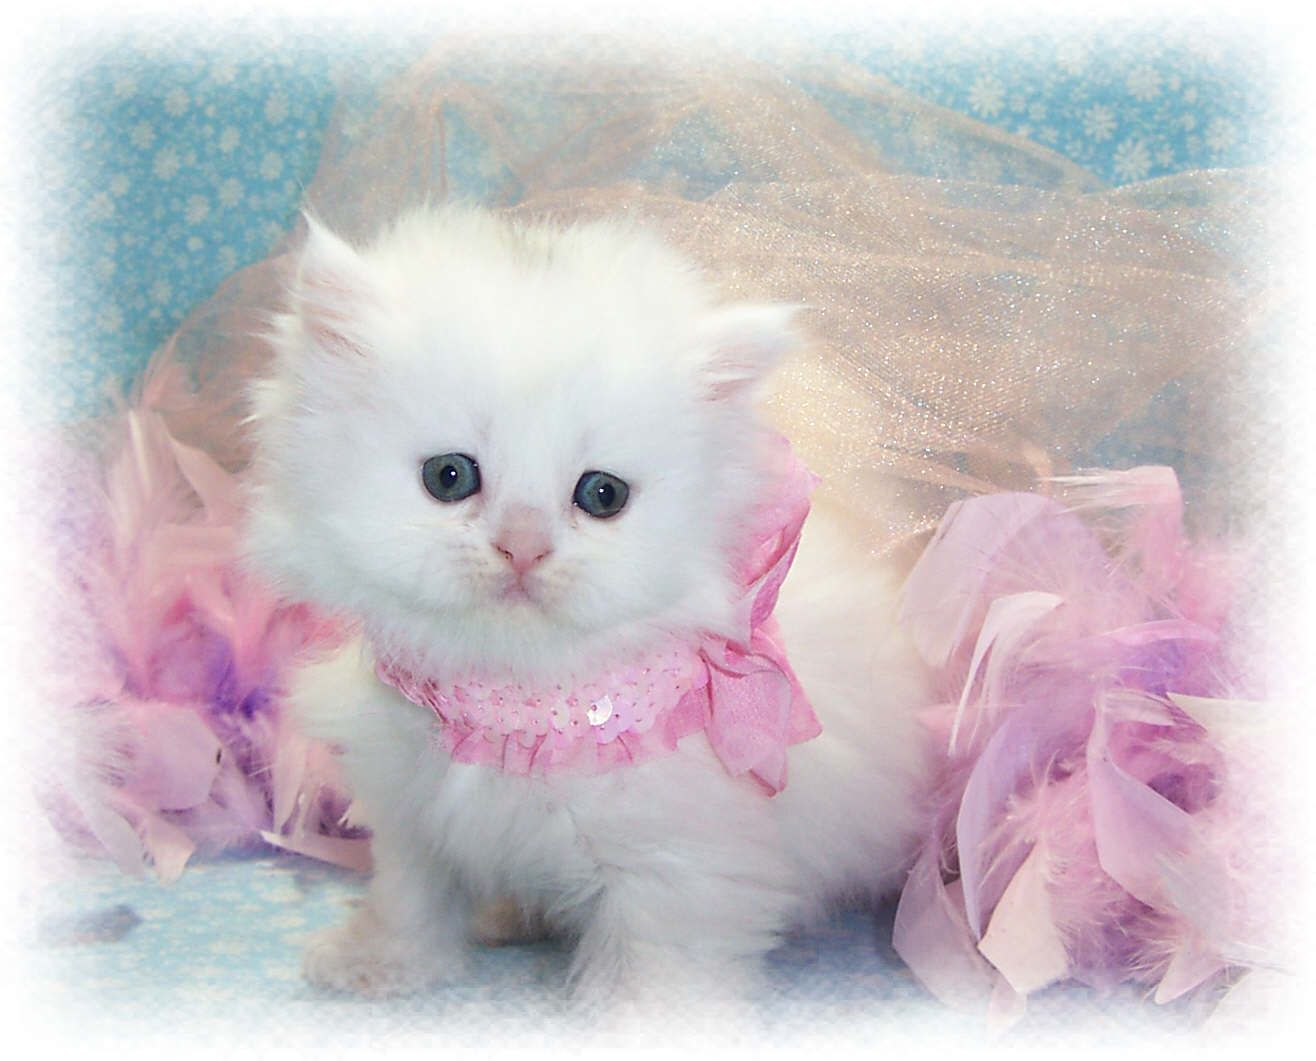 Cute Cat Cats Picture Cute Baby Cats Kittens Cutest Baby Cute Cat Wallpaper